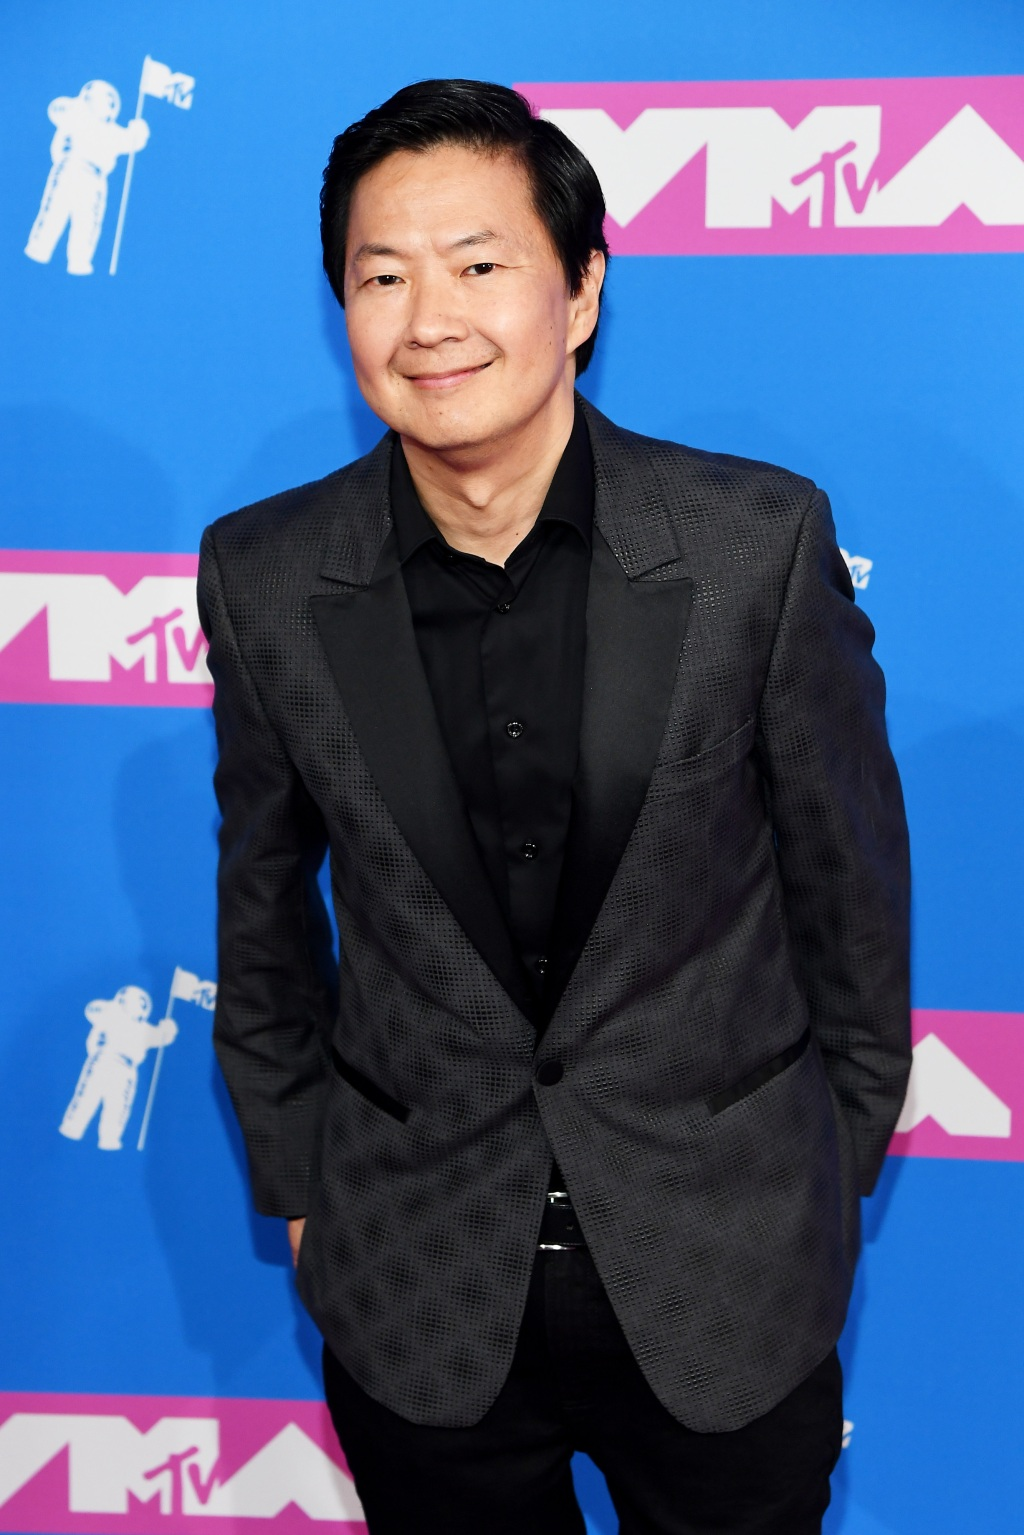 Ken Jeong attends the 2018 MTV Video Music Awards at Radio City Music Hall on August 20, 2018 in New York City. (Photo by Nicholas Hunt/Getty Images for MTV)